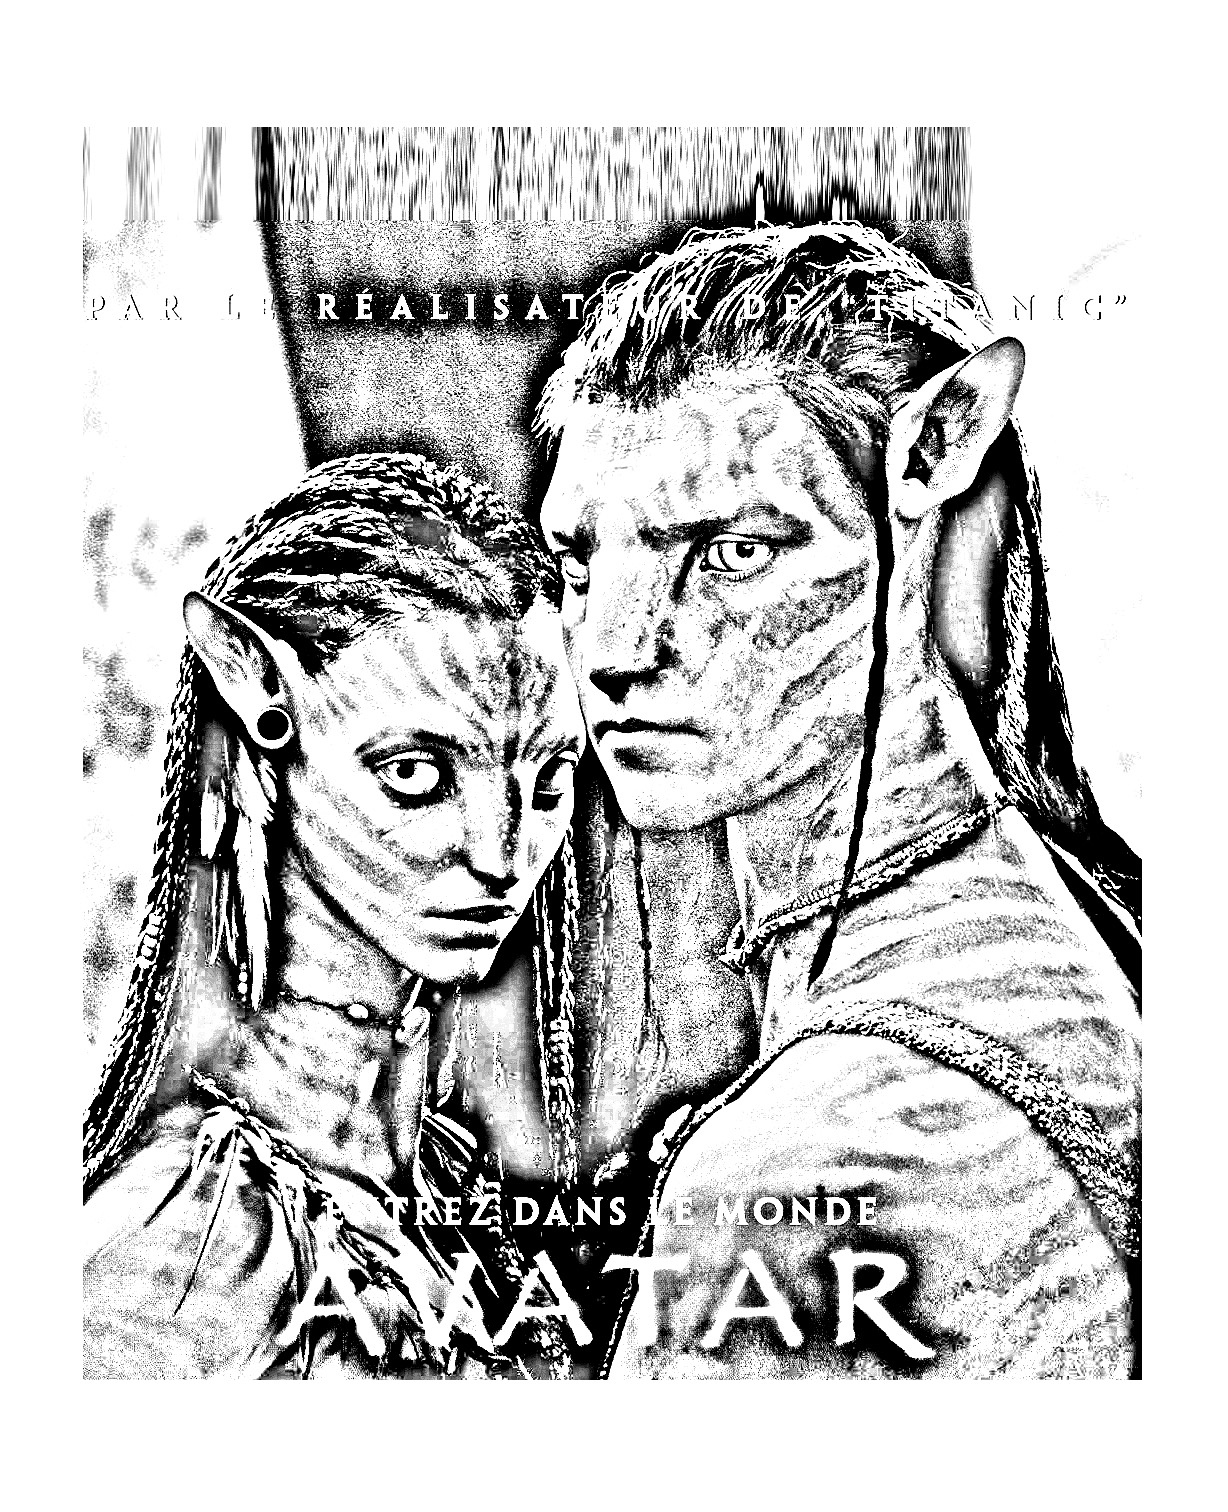 James Cameron's Avatar black & white movie poster